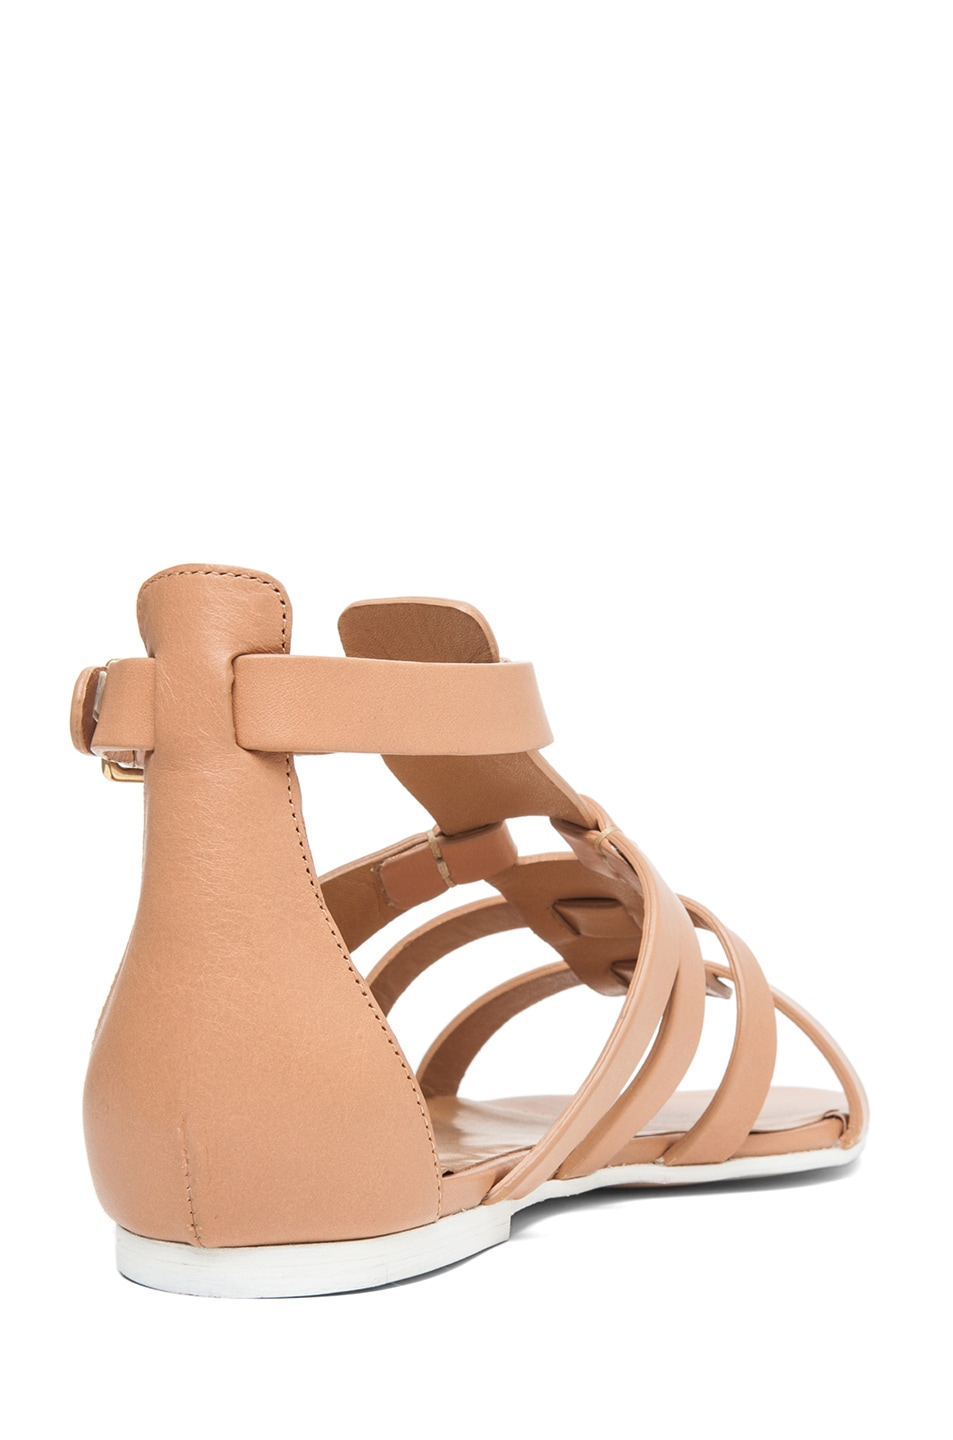 Image 3 of Chloe Gladiator Sandal in Nude